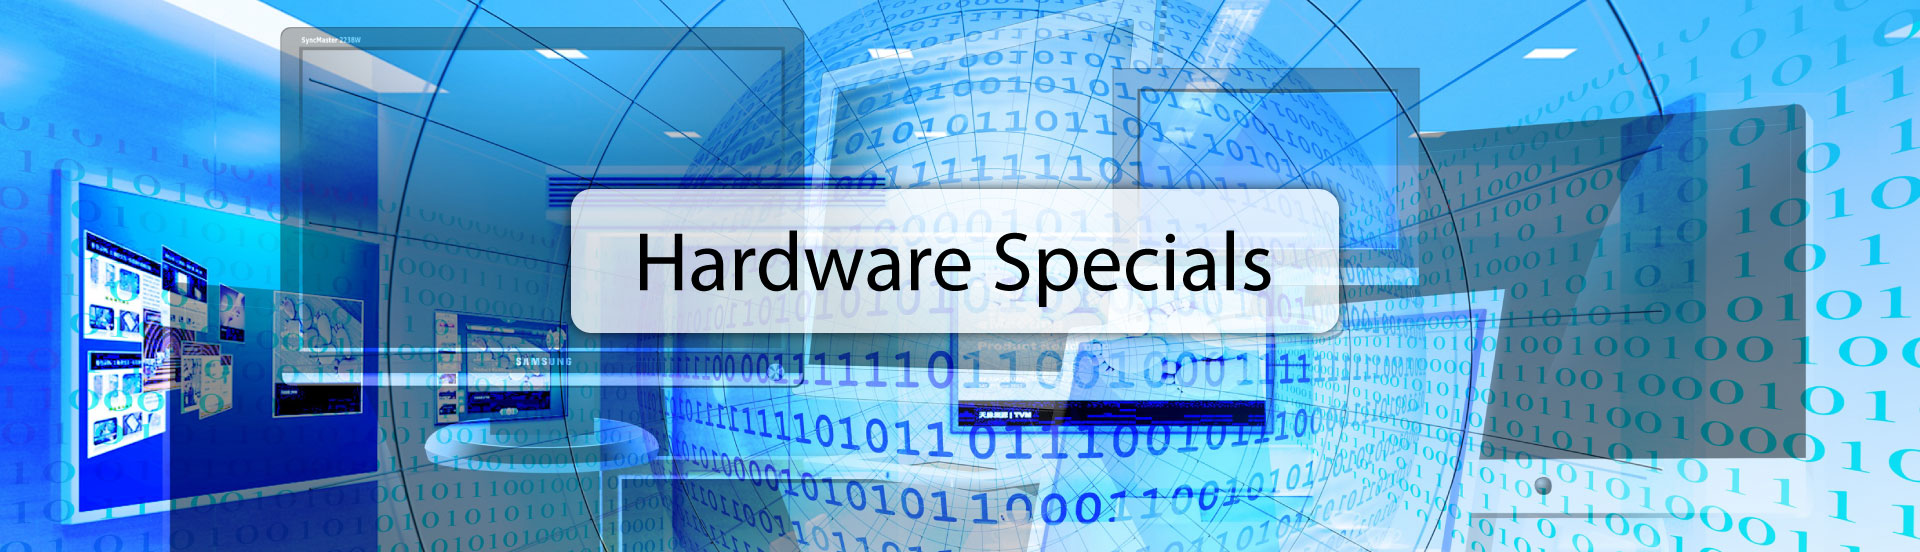 Computer hardware and equipment specials